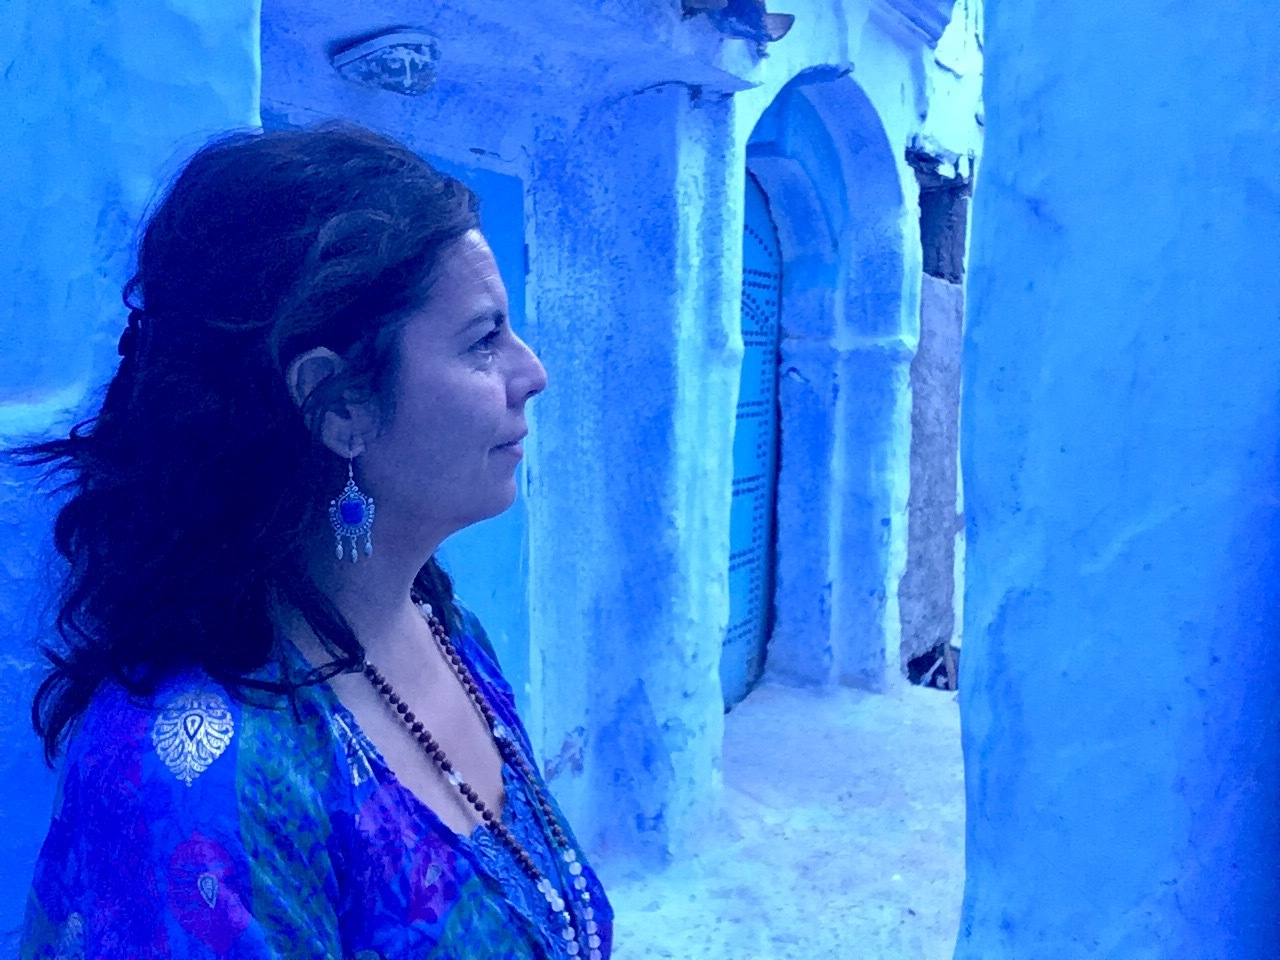 Chefchaouen- the Blue pearl